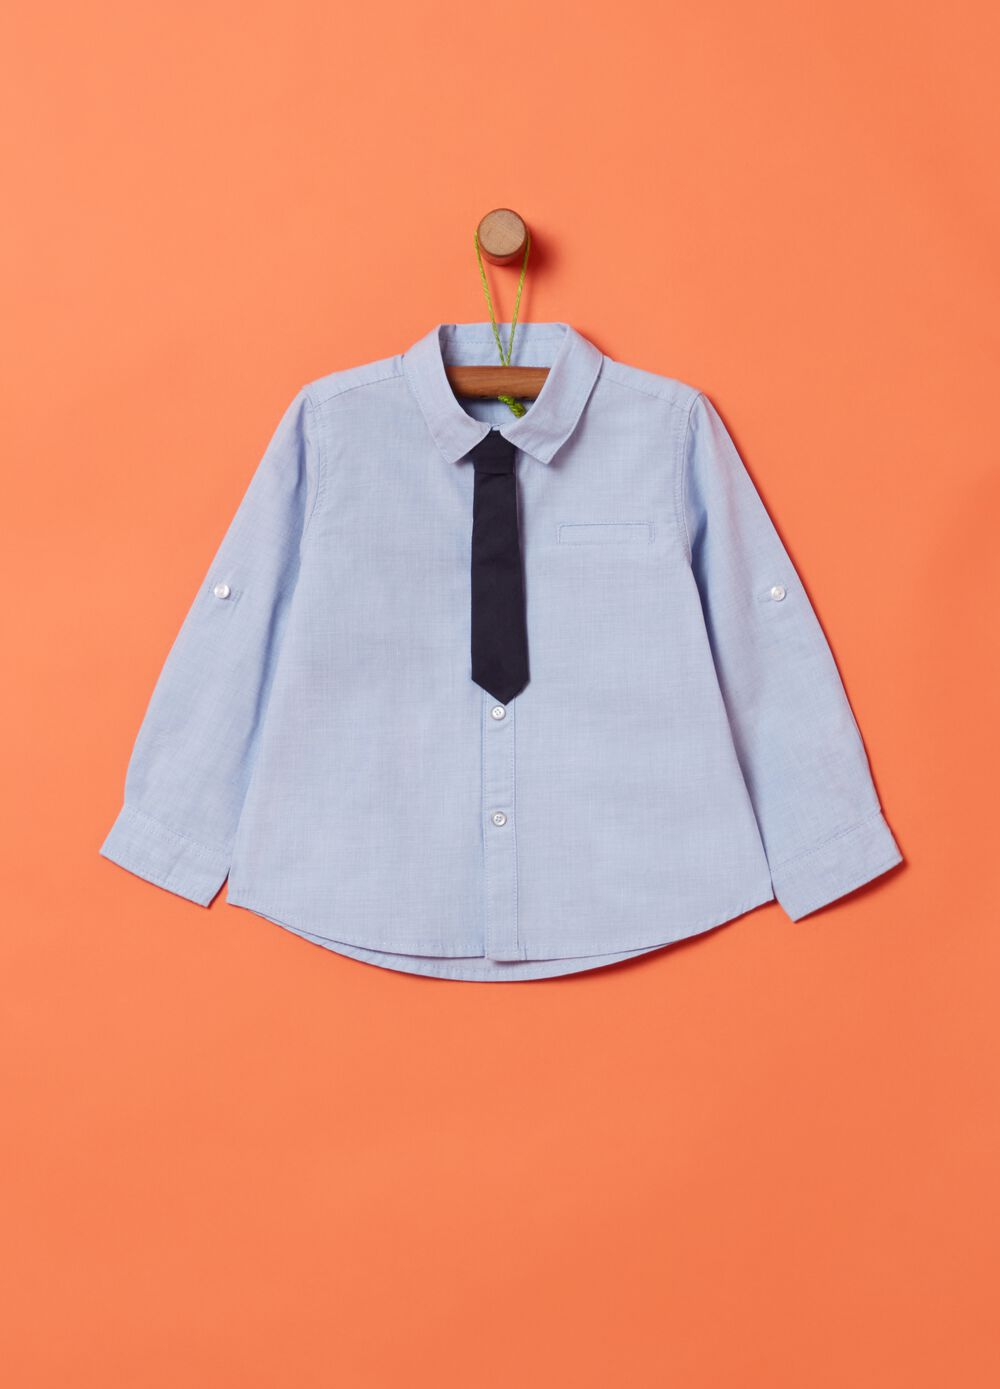 100% organic cotton shirt with tie